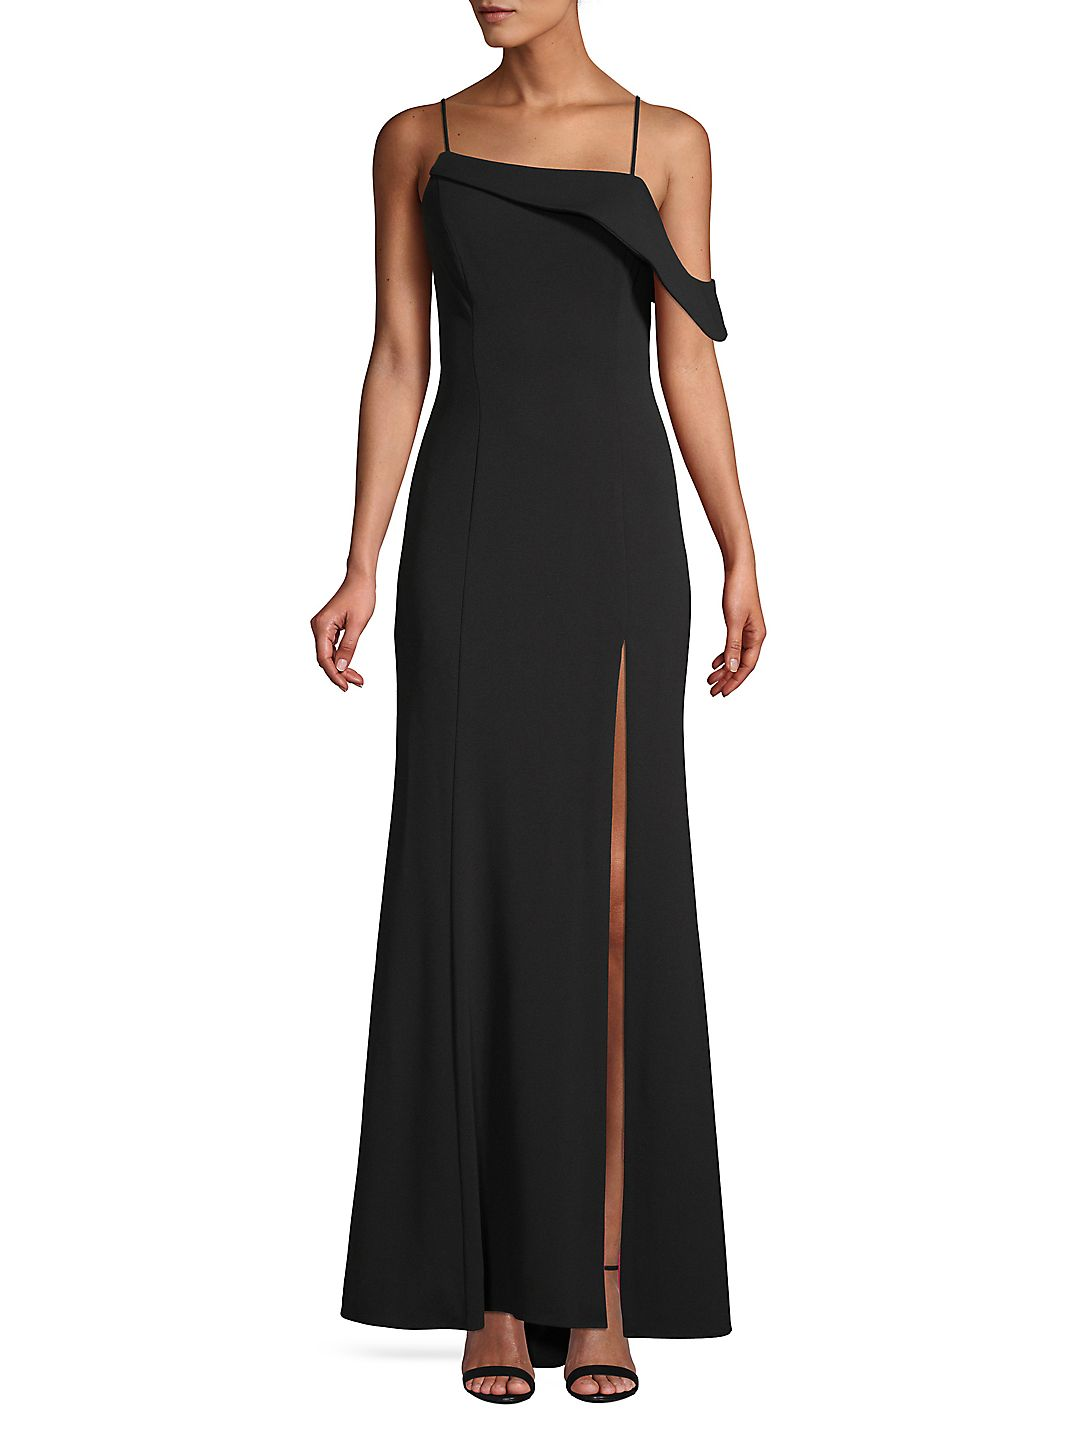 Spaghetti-Strap Off-Shoulder Slit Gown